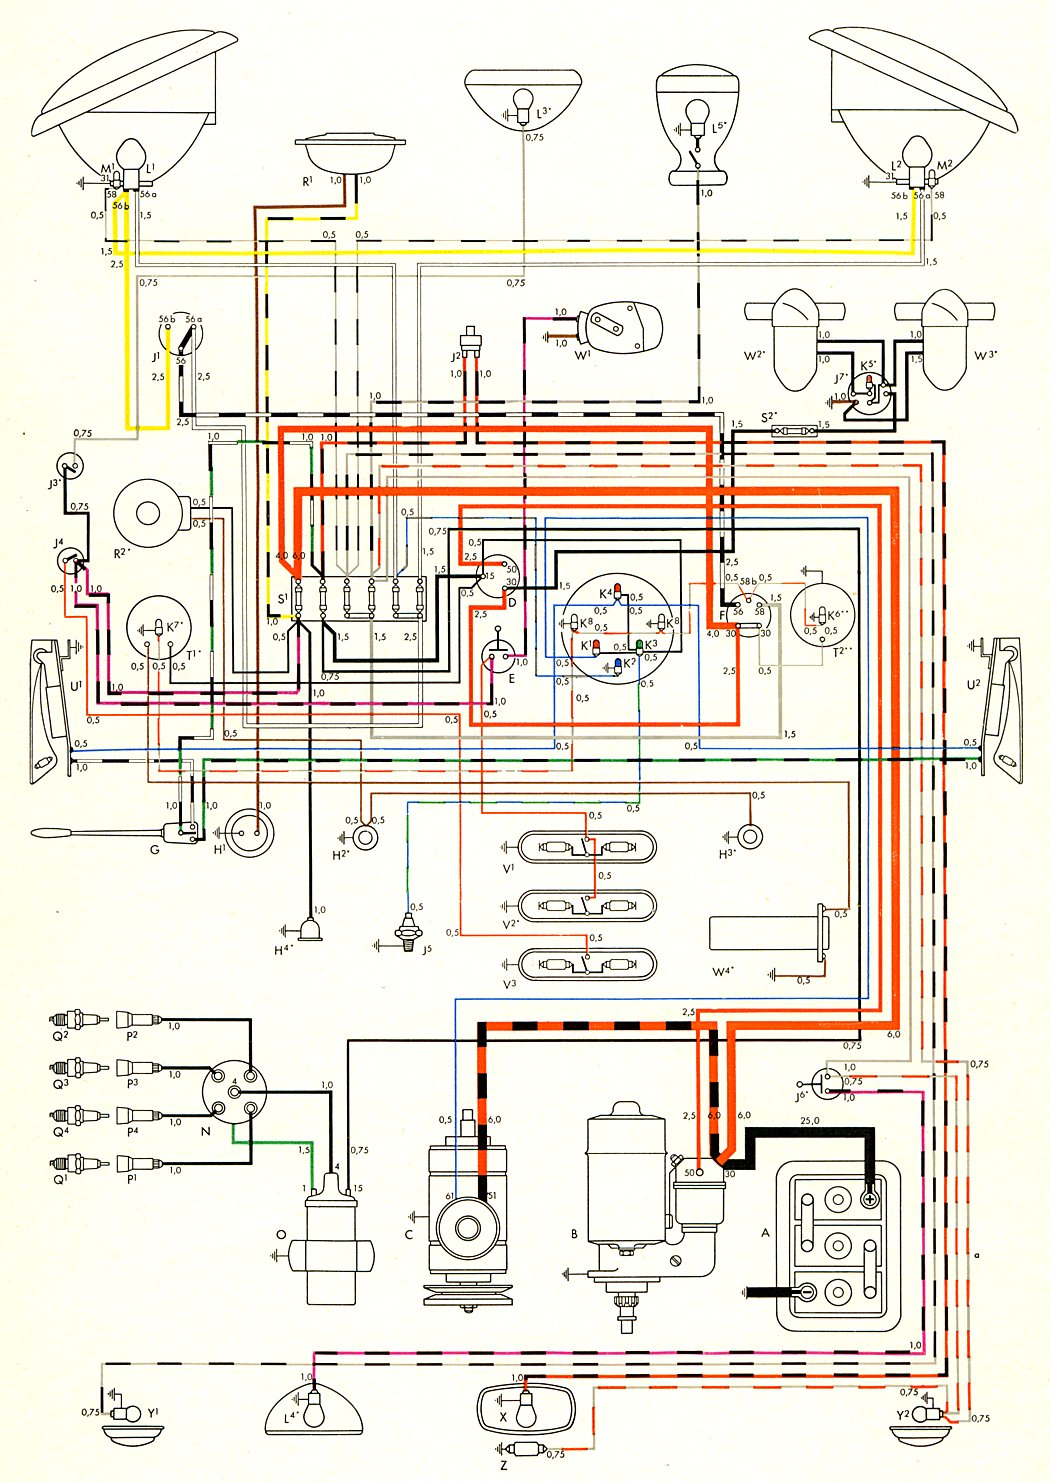 thesamba com type 2 wiring diagrams Bus Wiring Diagram no communication bus wiring